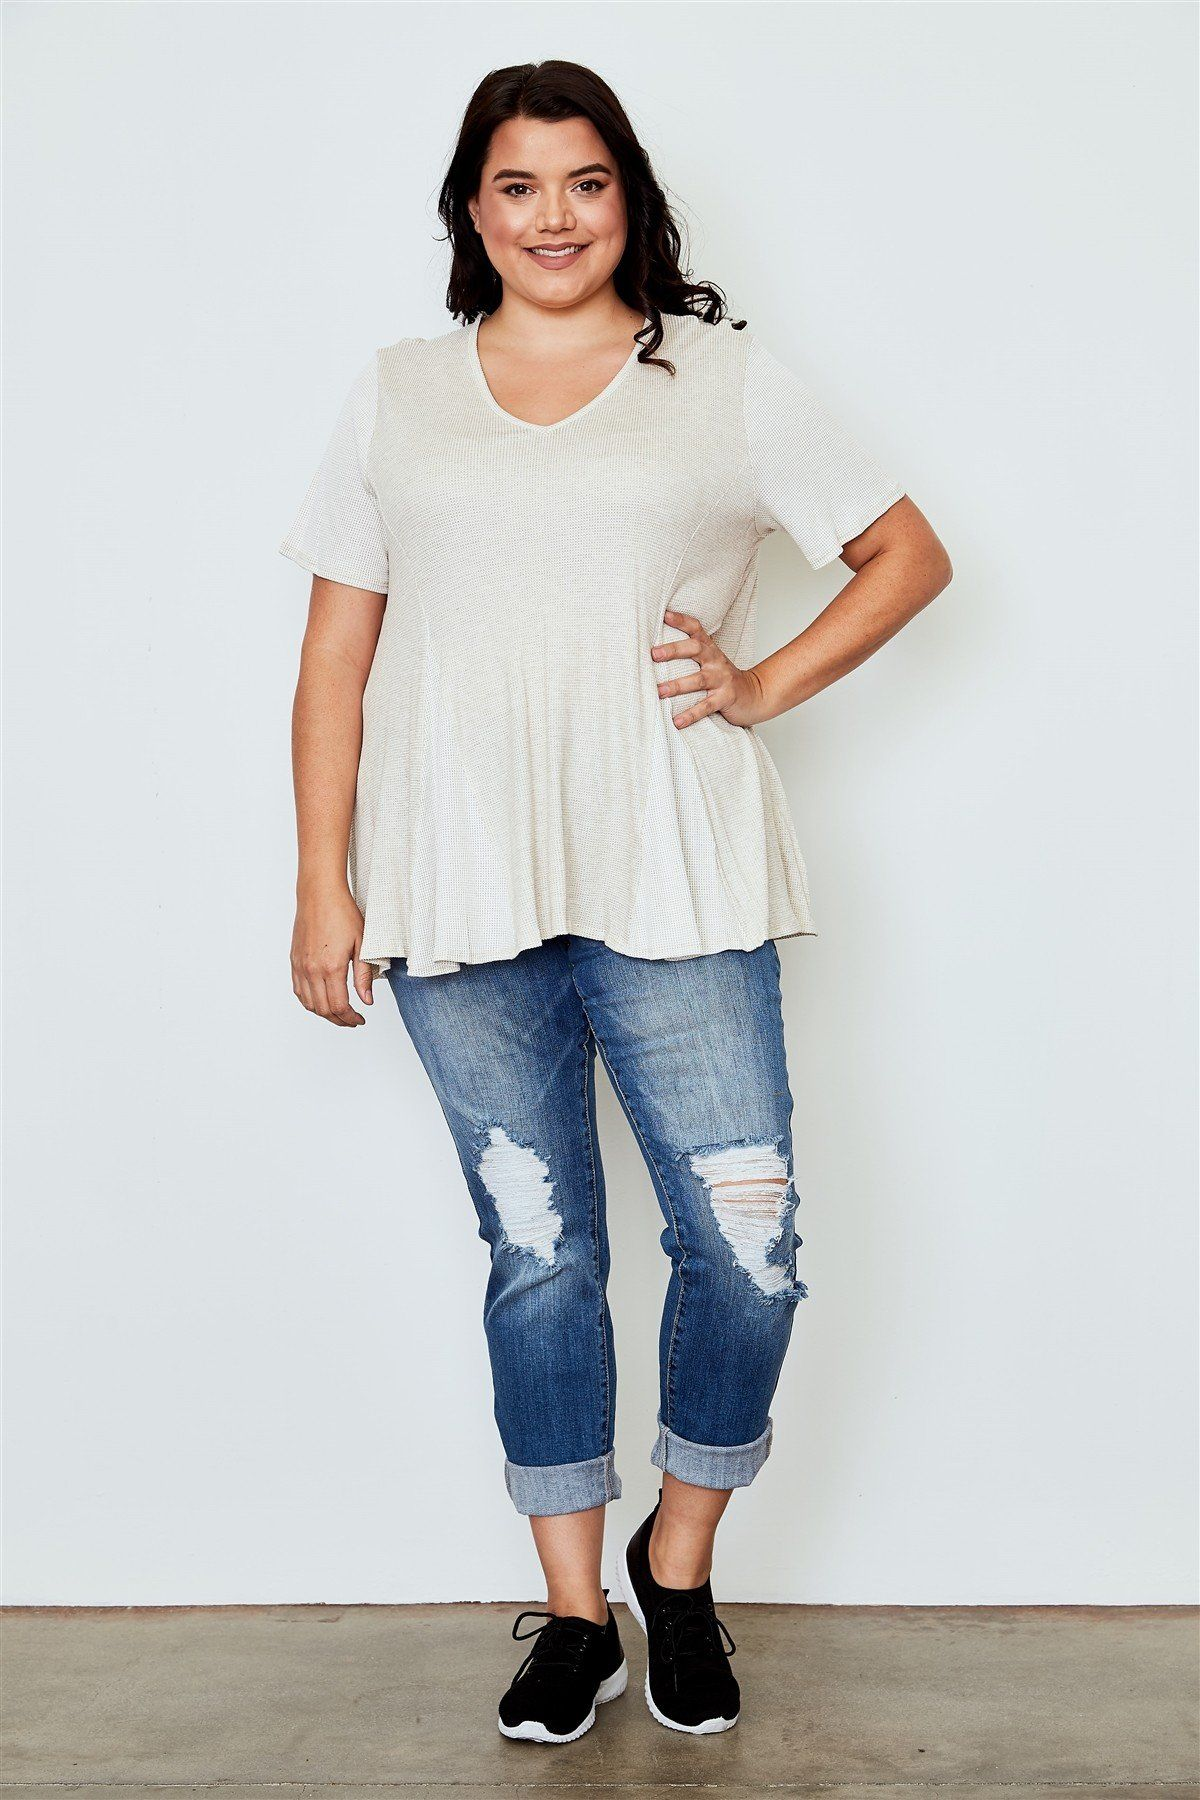 1d6195affe9dea Plus size v neck loose top  Me  Swag  Fun  Summer  Outfit  Friends  Cute   cool  YoungLooking  AllMine